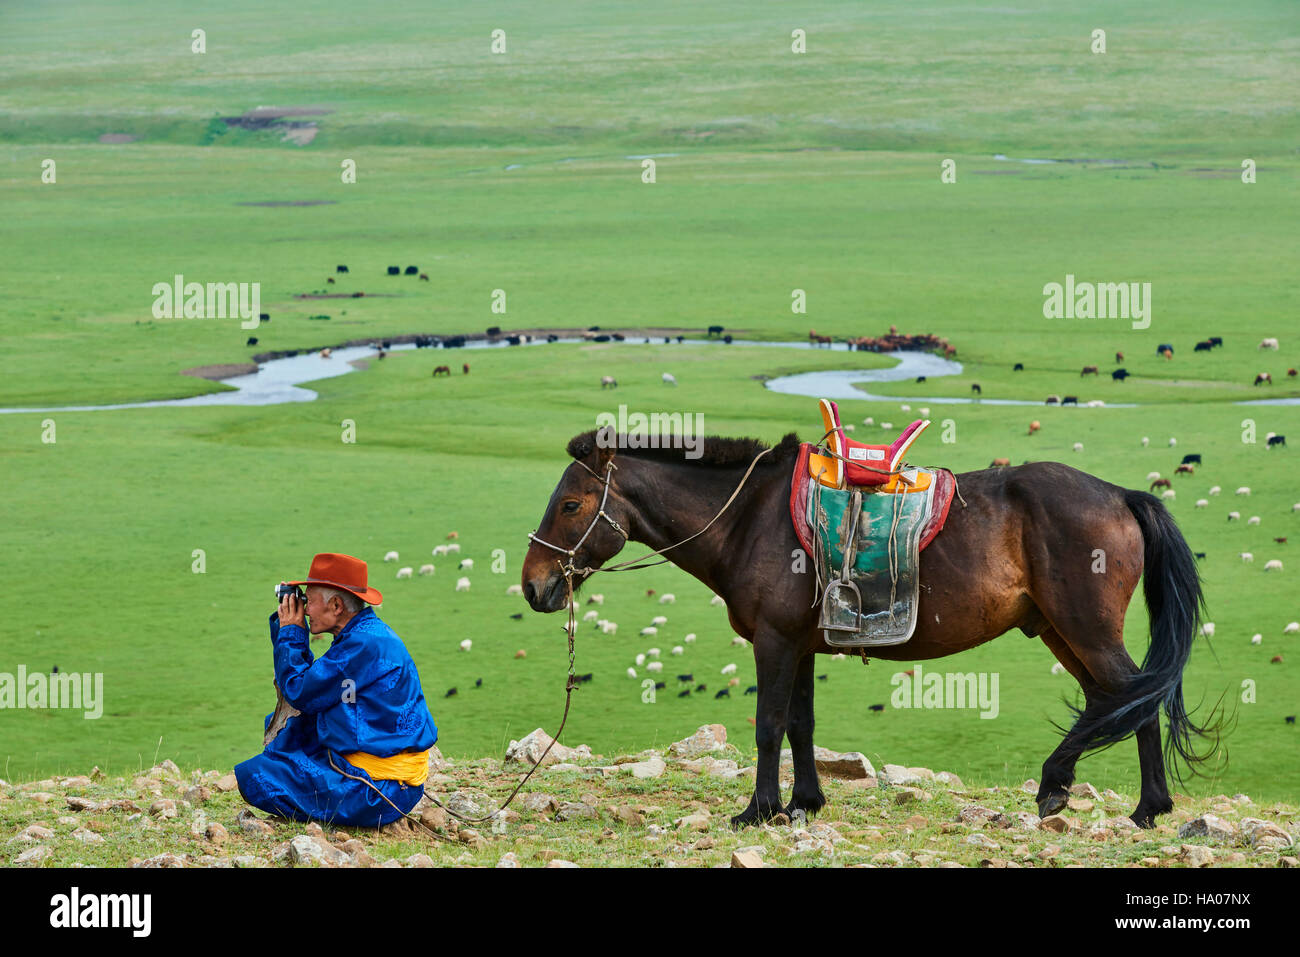 Mongolia, Arkhangai province, yurt nomad camp in the steppe, Mongolian horserider - Stock Image